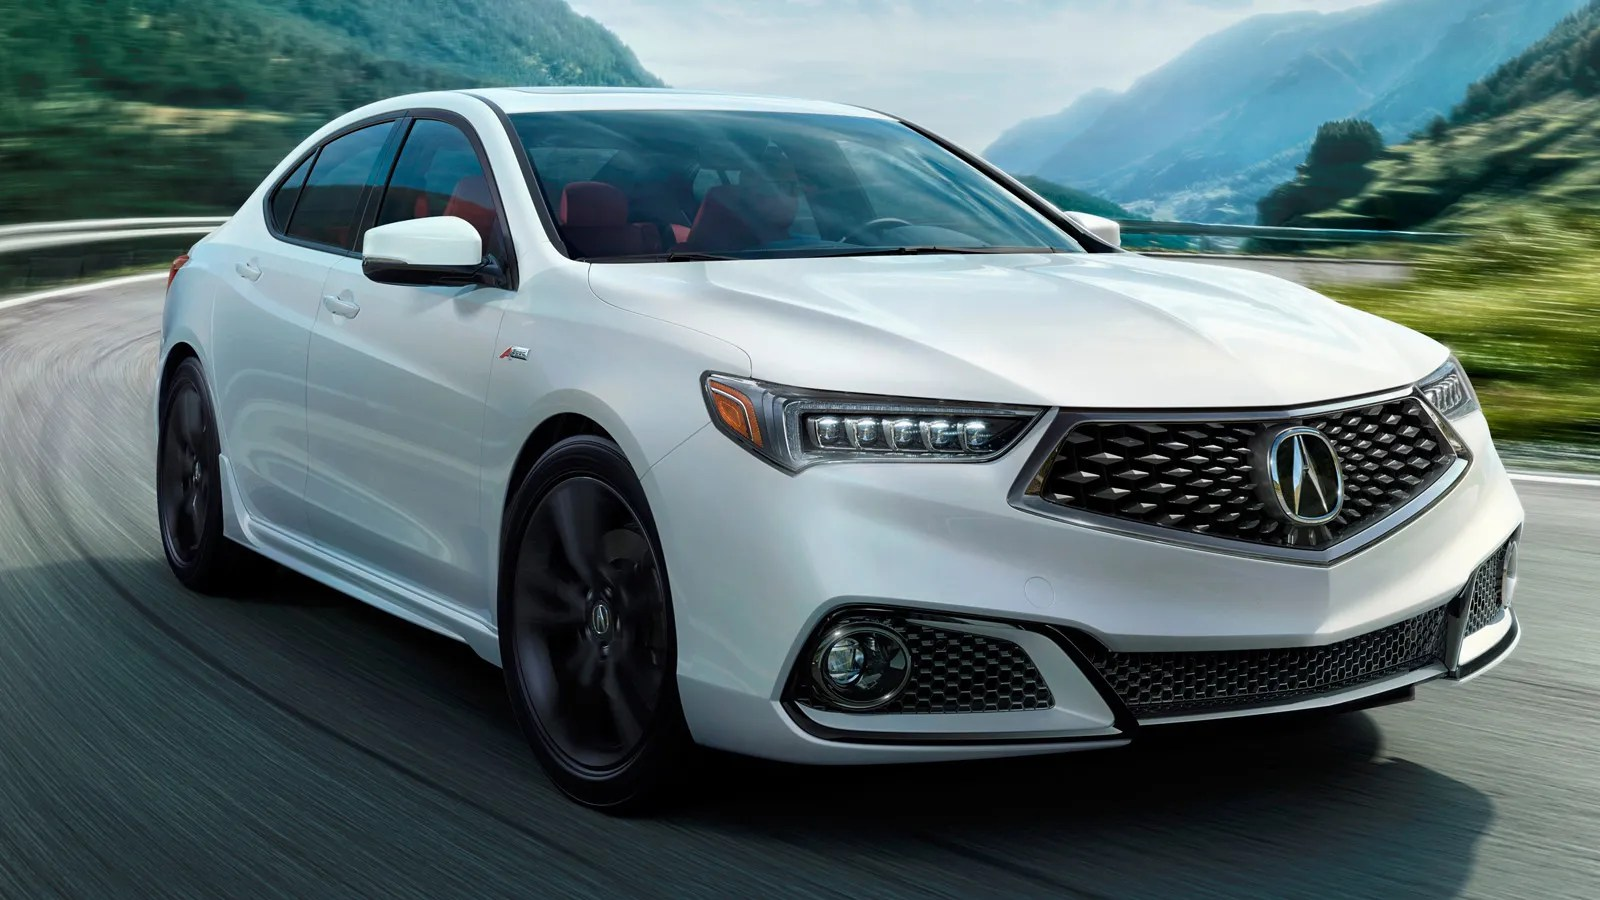 hight resolution of the 2018 acura tlx brings back a mild performance trim with a new angry face